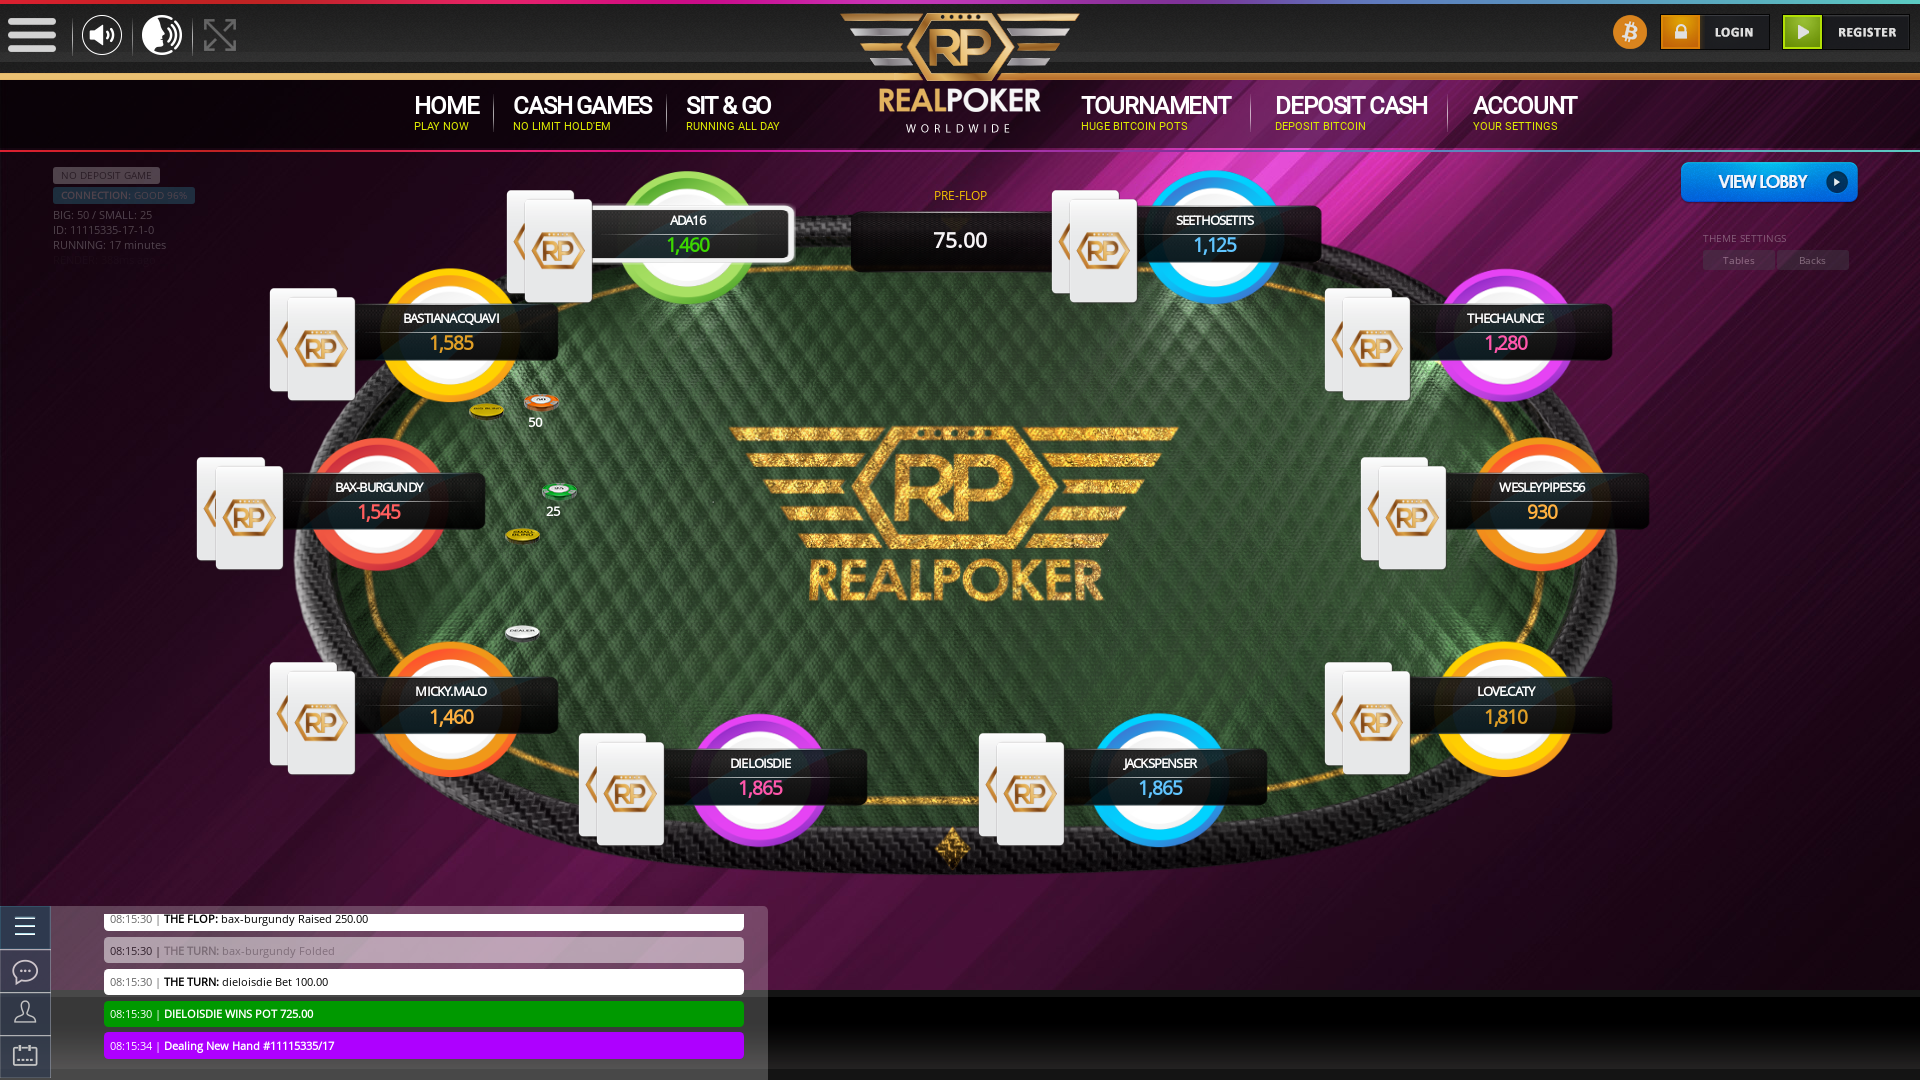 Romania BTC Poker from May